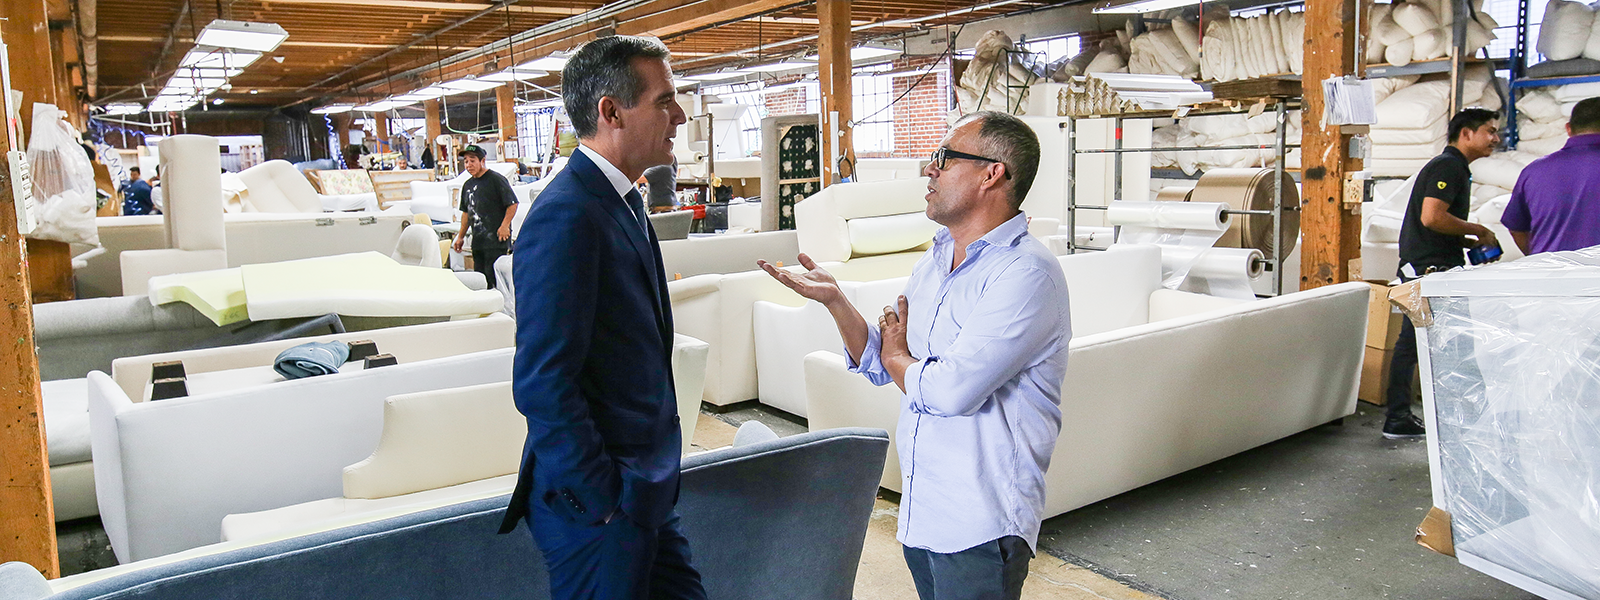 Los Angeles Mayor Gil Garcetti with Refoundry co-founder Cisco Pinedo at the Cisco Brothers factory in South Central, Los Angeles.